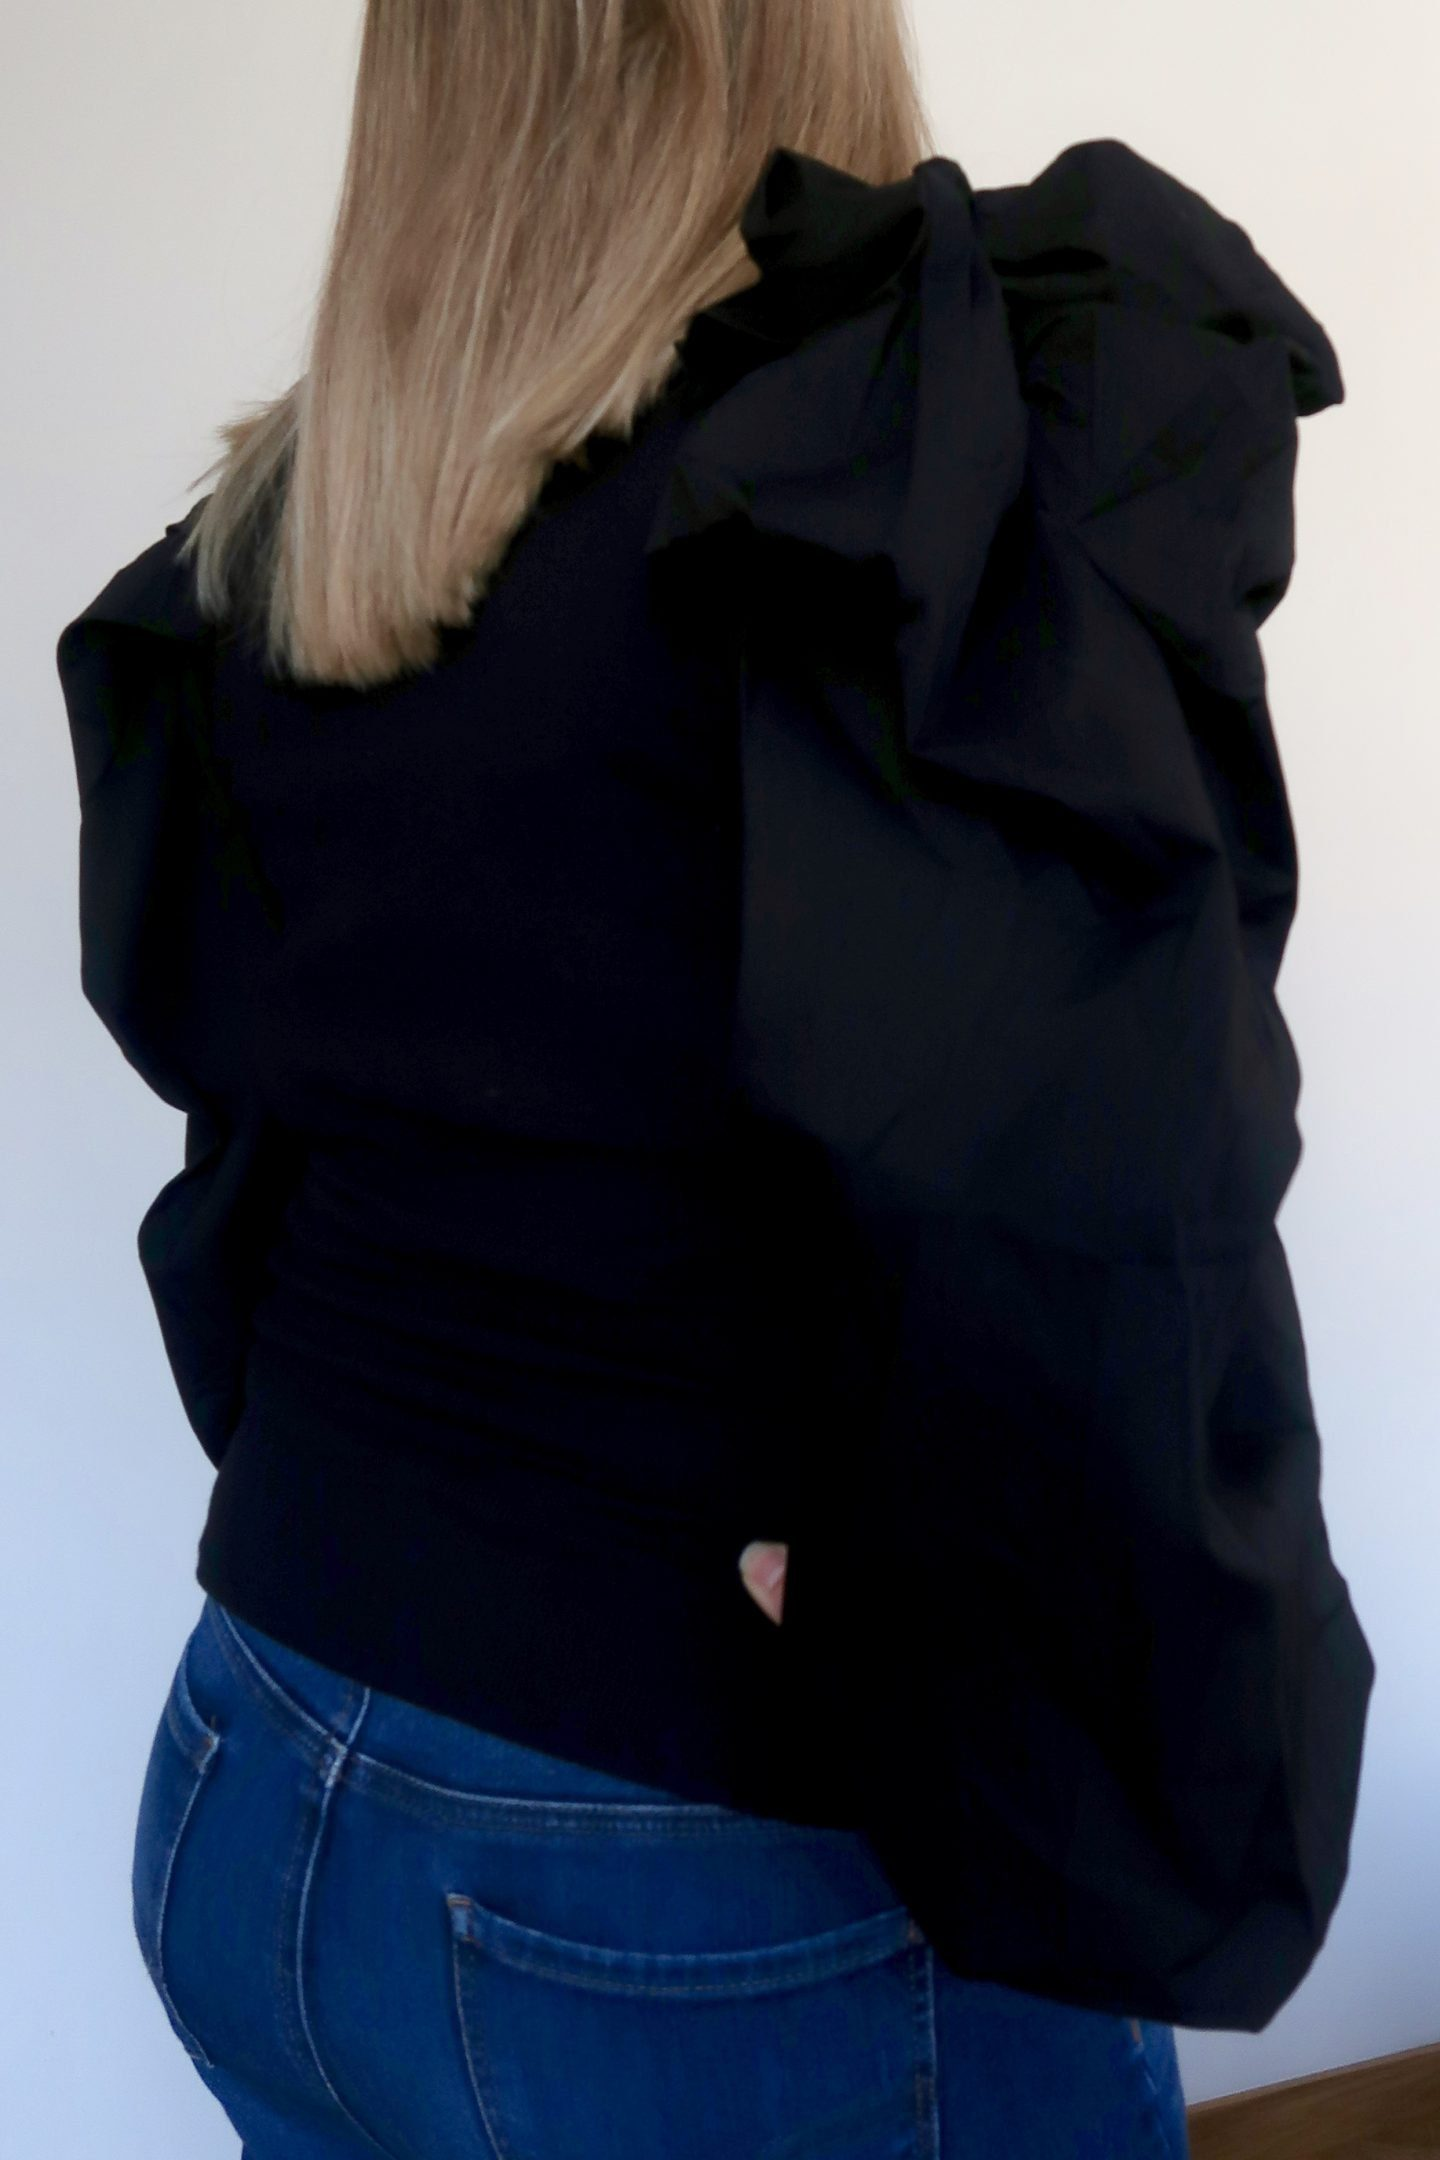 A woman facing away from the camera wearing a black puff sleeves top and blue jeans